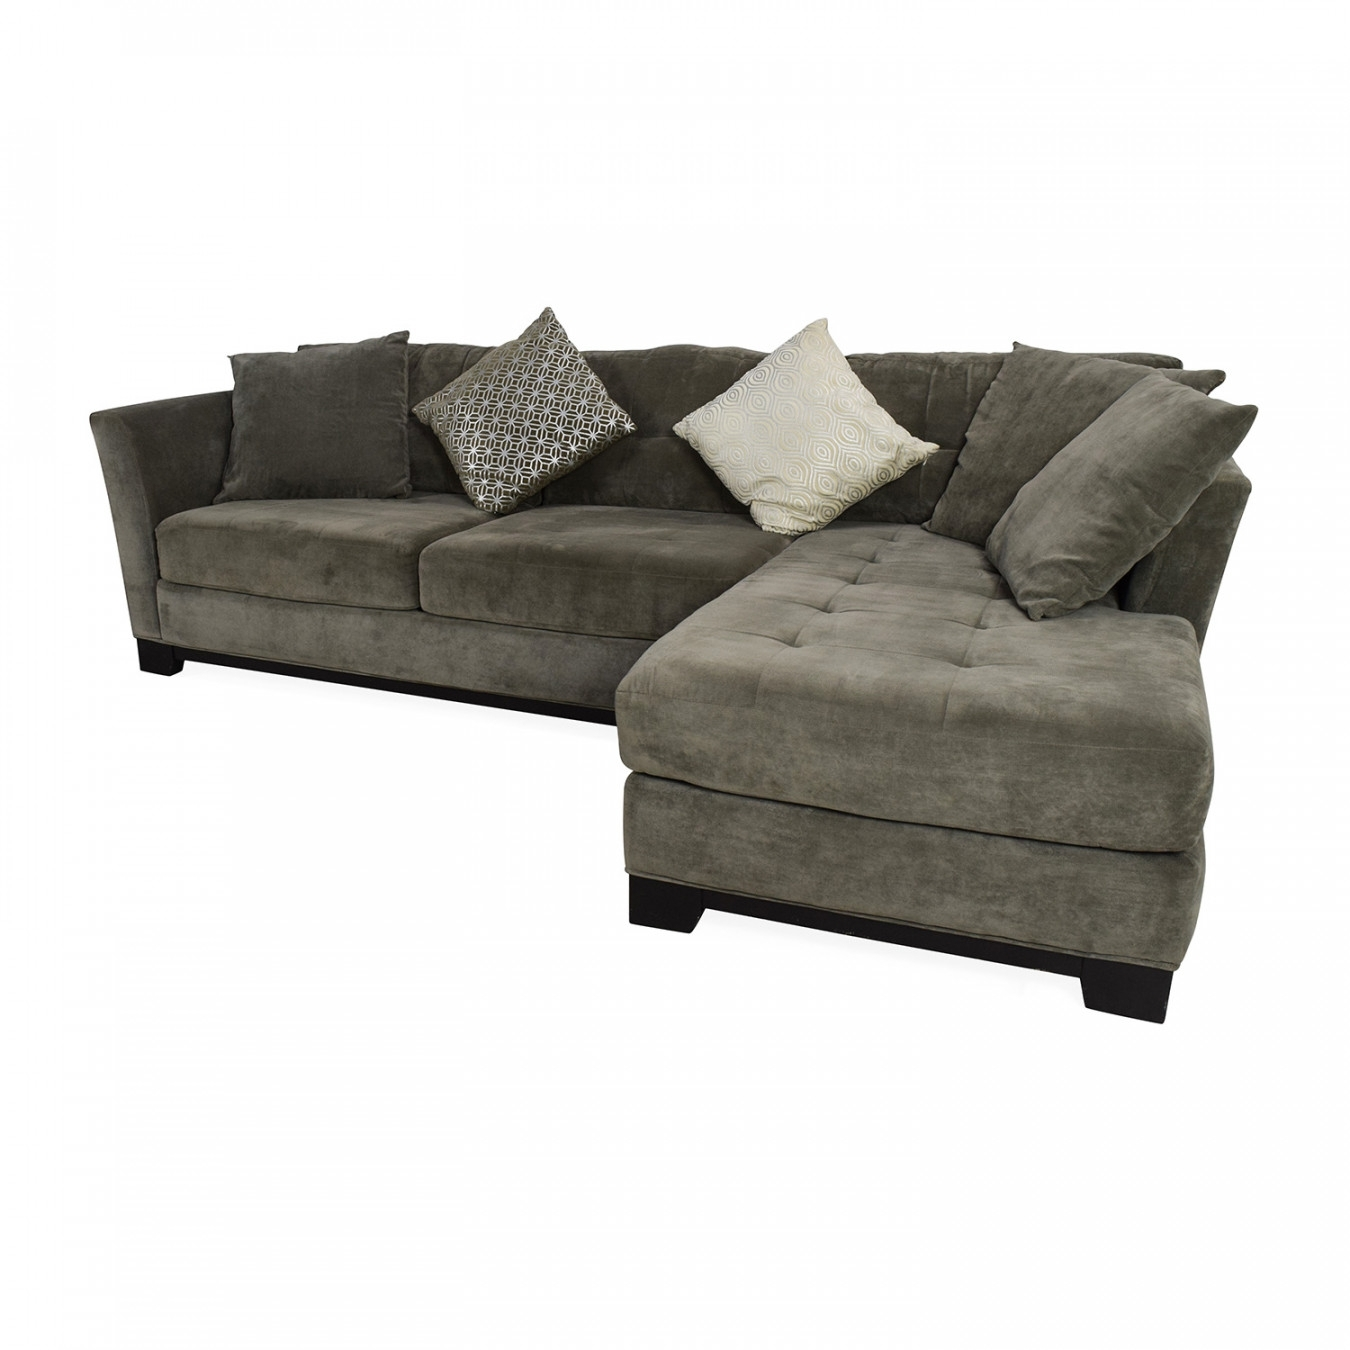 Sofas: Oversized Sectional With Chaise | Macys Sectional Sofa | Home pertaining to Macys Sectional Sofas (Image 8 of 10)